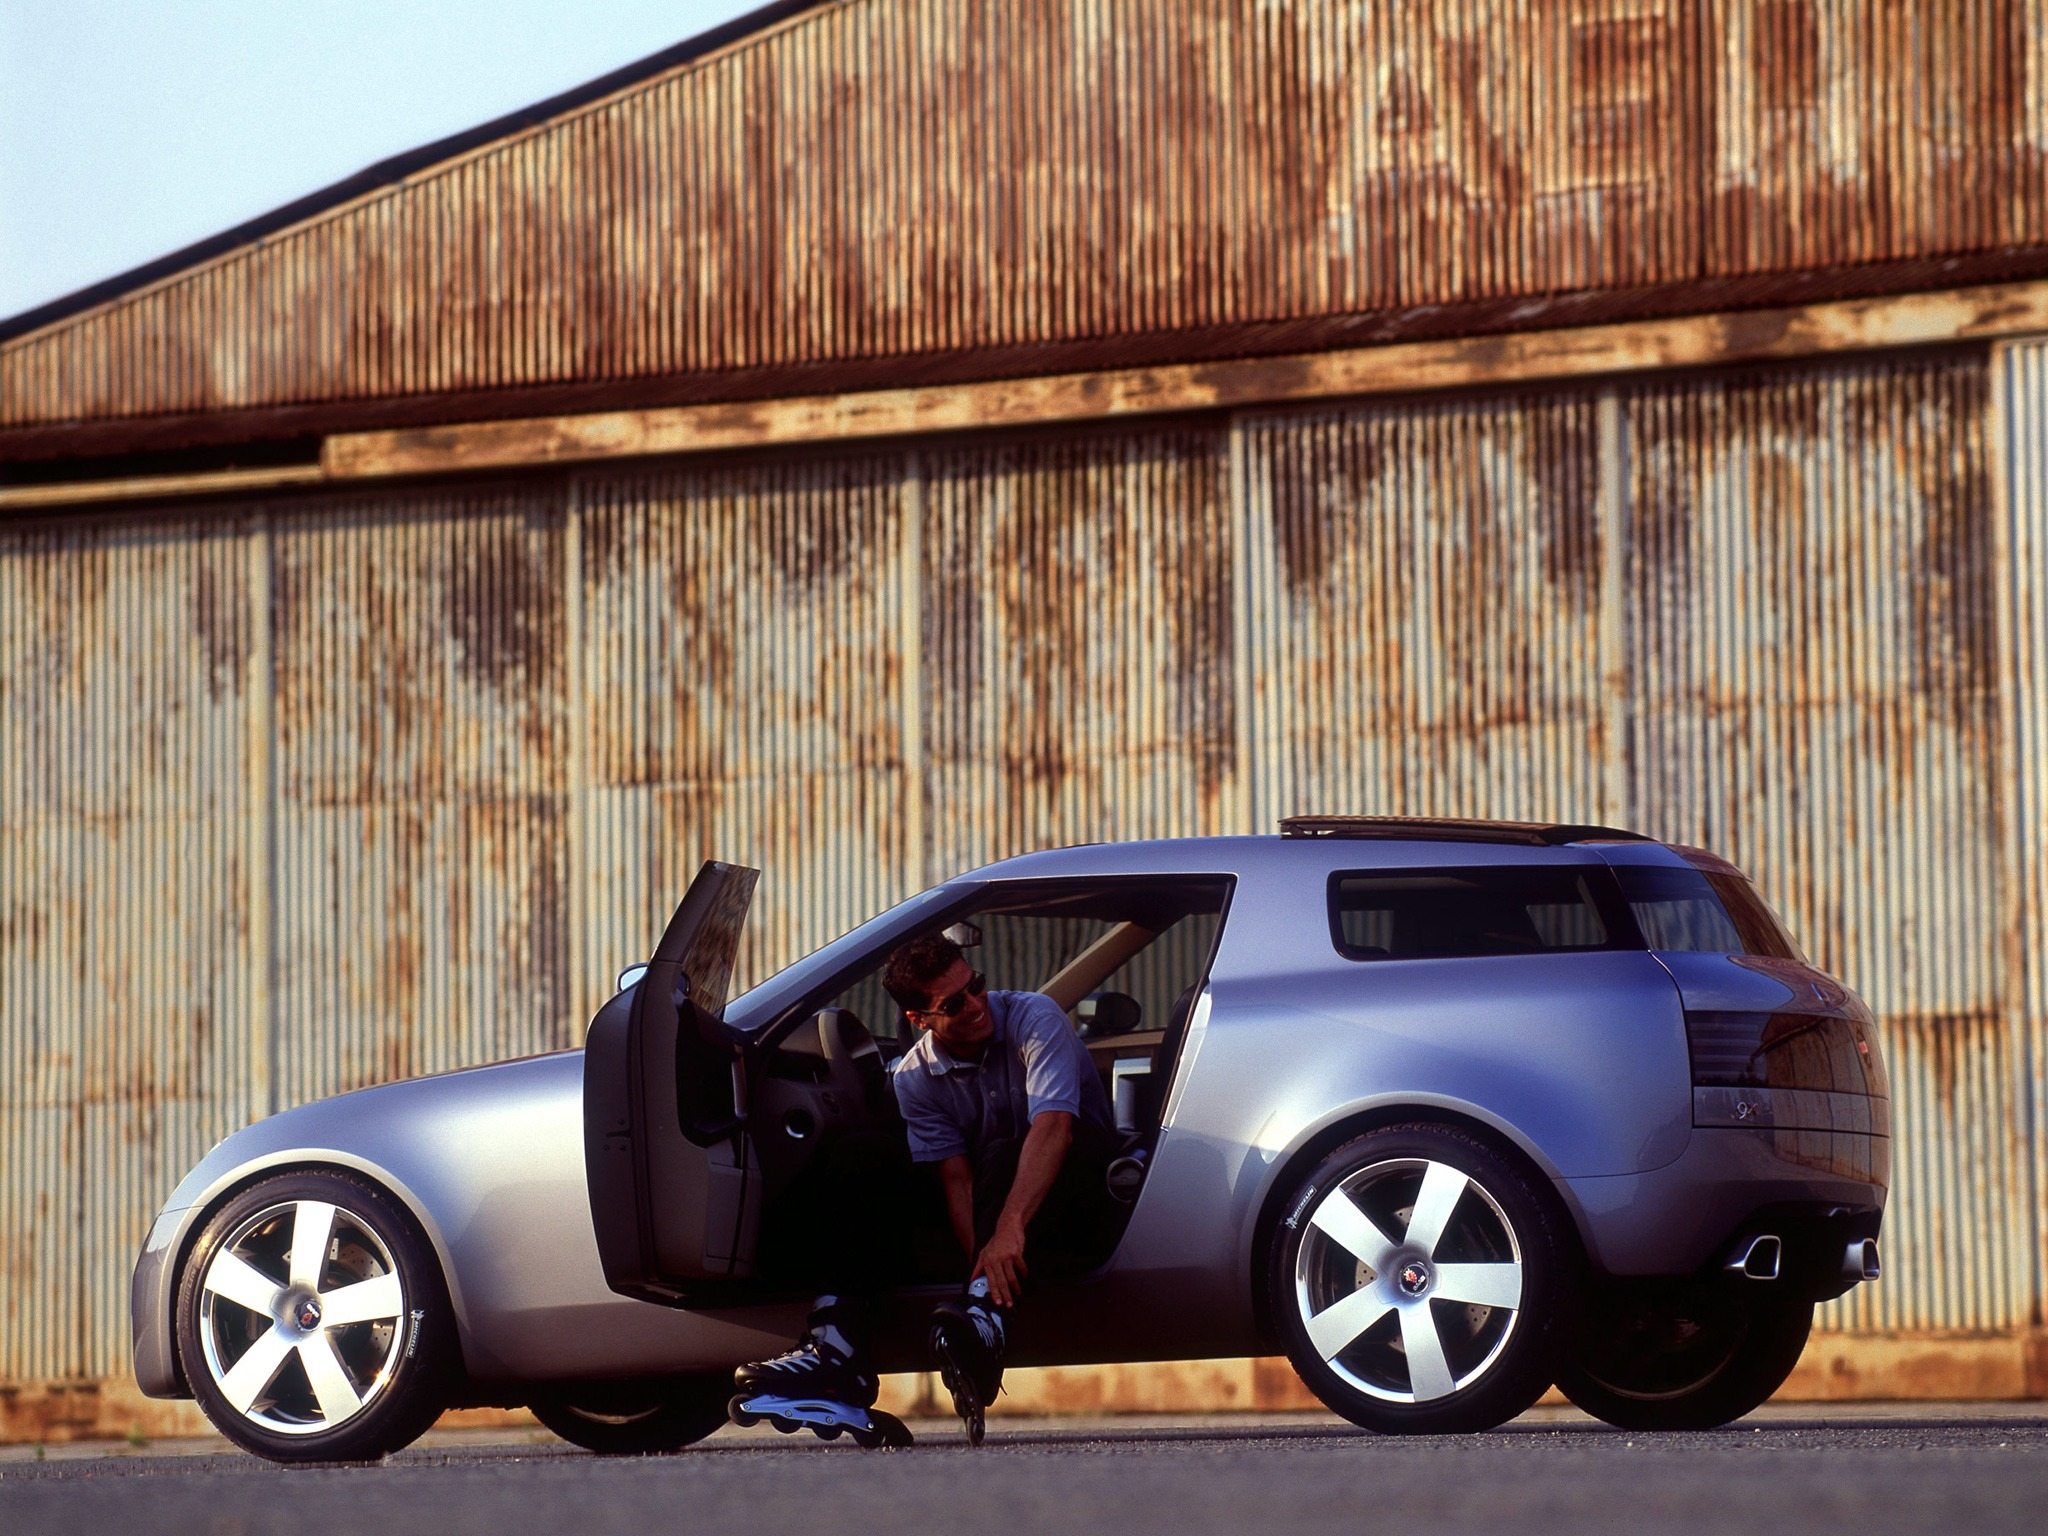 Volvo Near Me >> Saab 9X Concept (2001) - Old Concept Cars